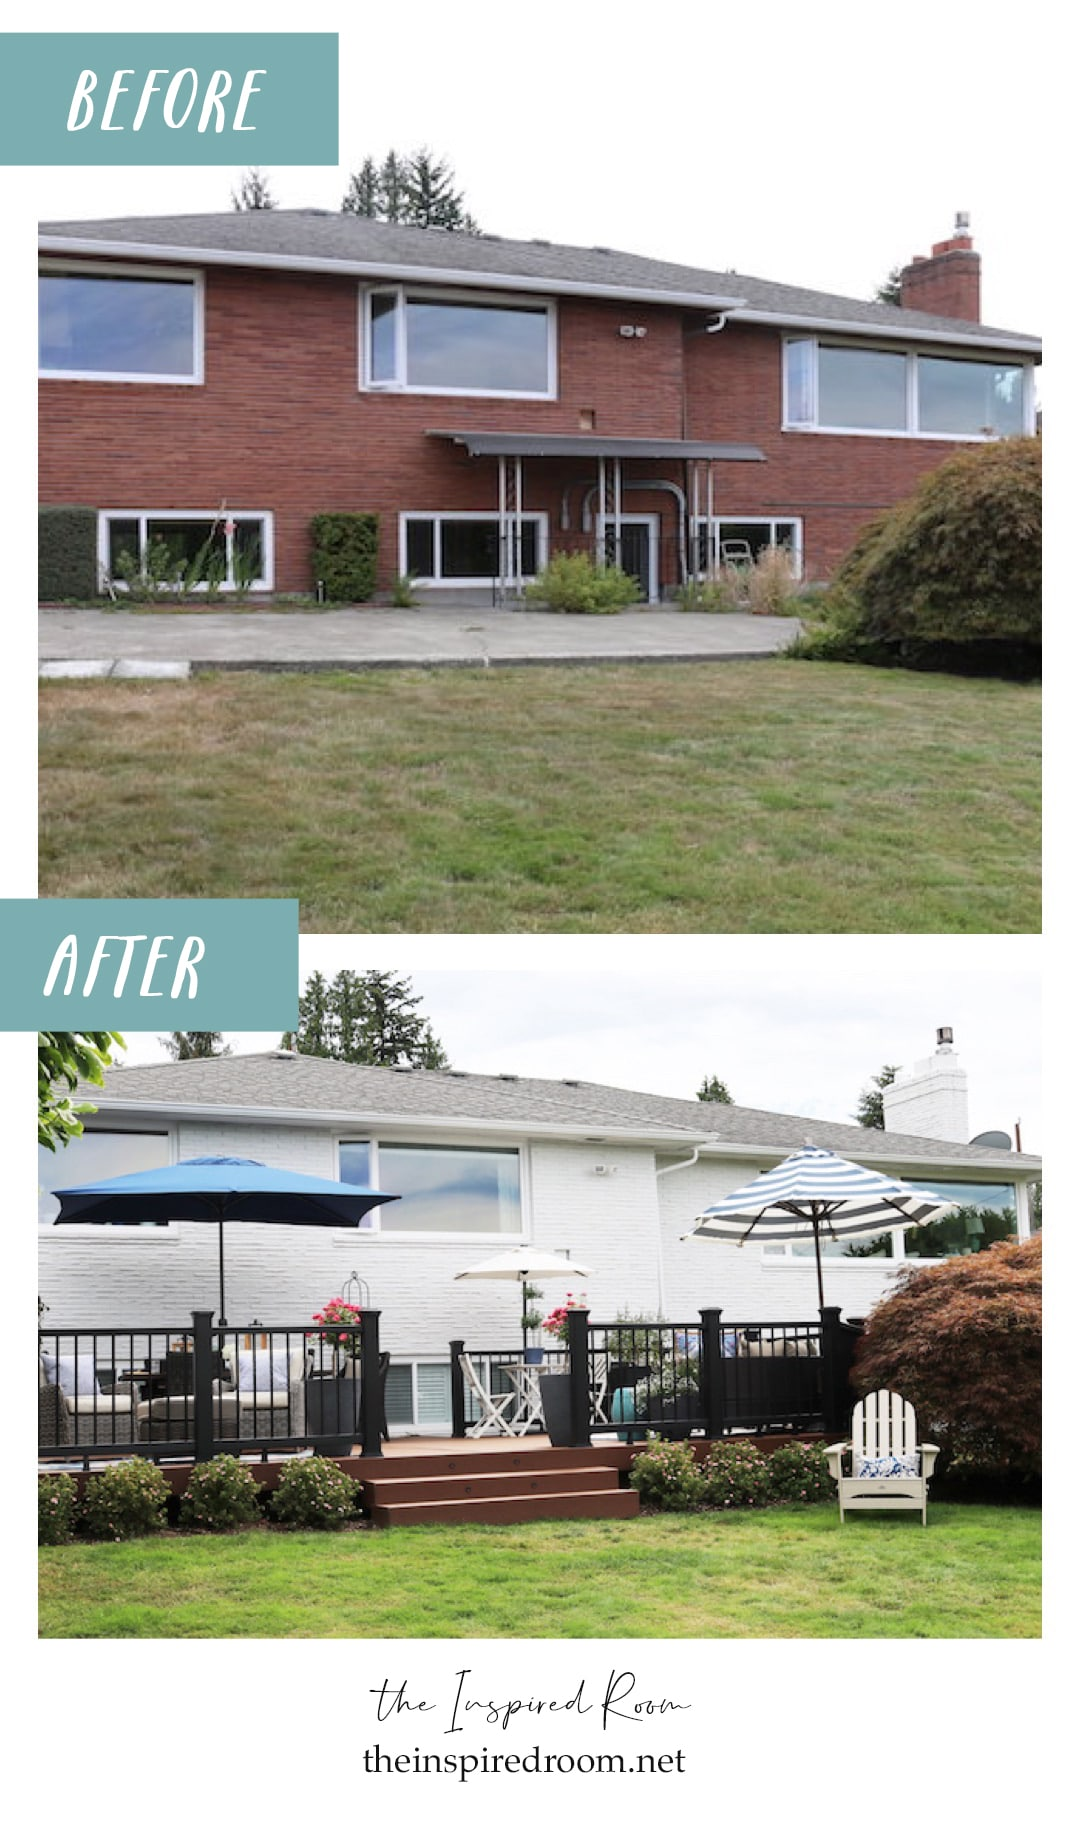 Our Painted Brick Exterior + Backyard Projects: Part One